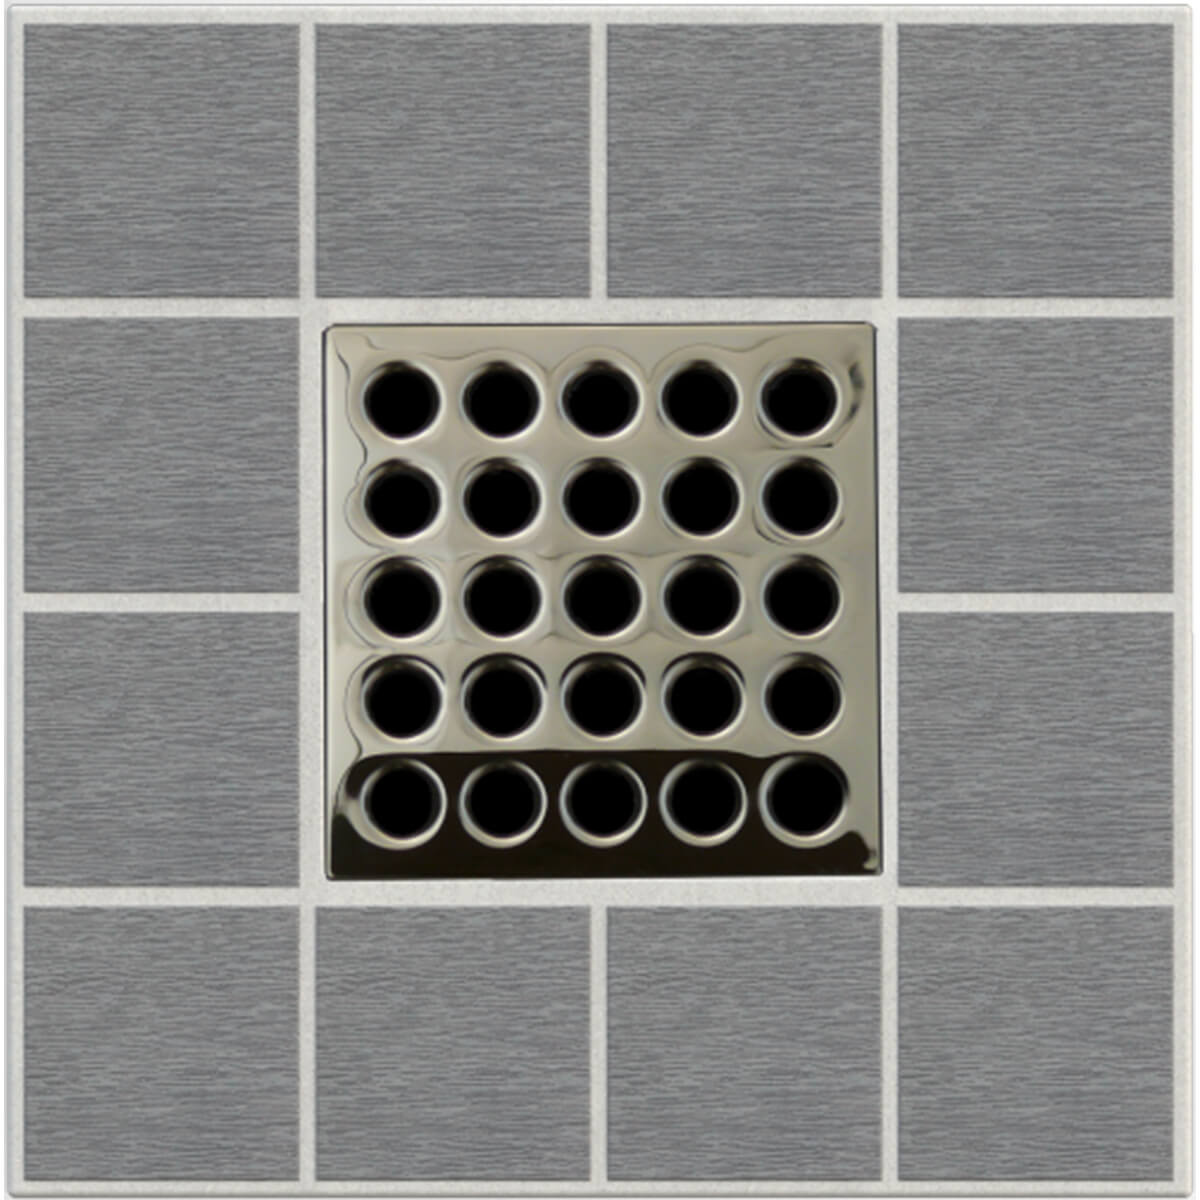 Polished Nickel Ebbe Grates For Shower Drains E4409